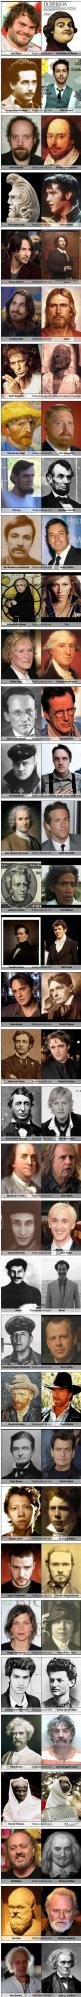 Funny celebrities historical look-alikes: Twin, Giggle, Mindblown, Christian Bale, So Funny